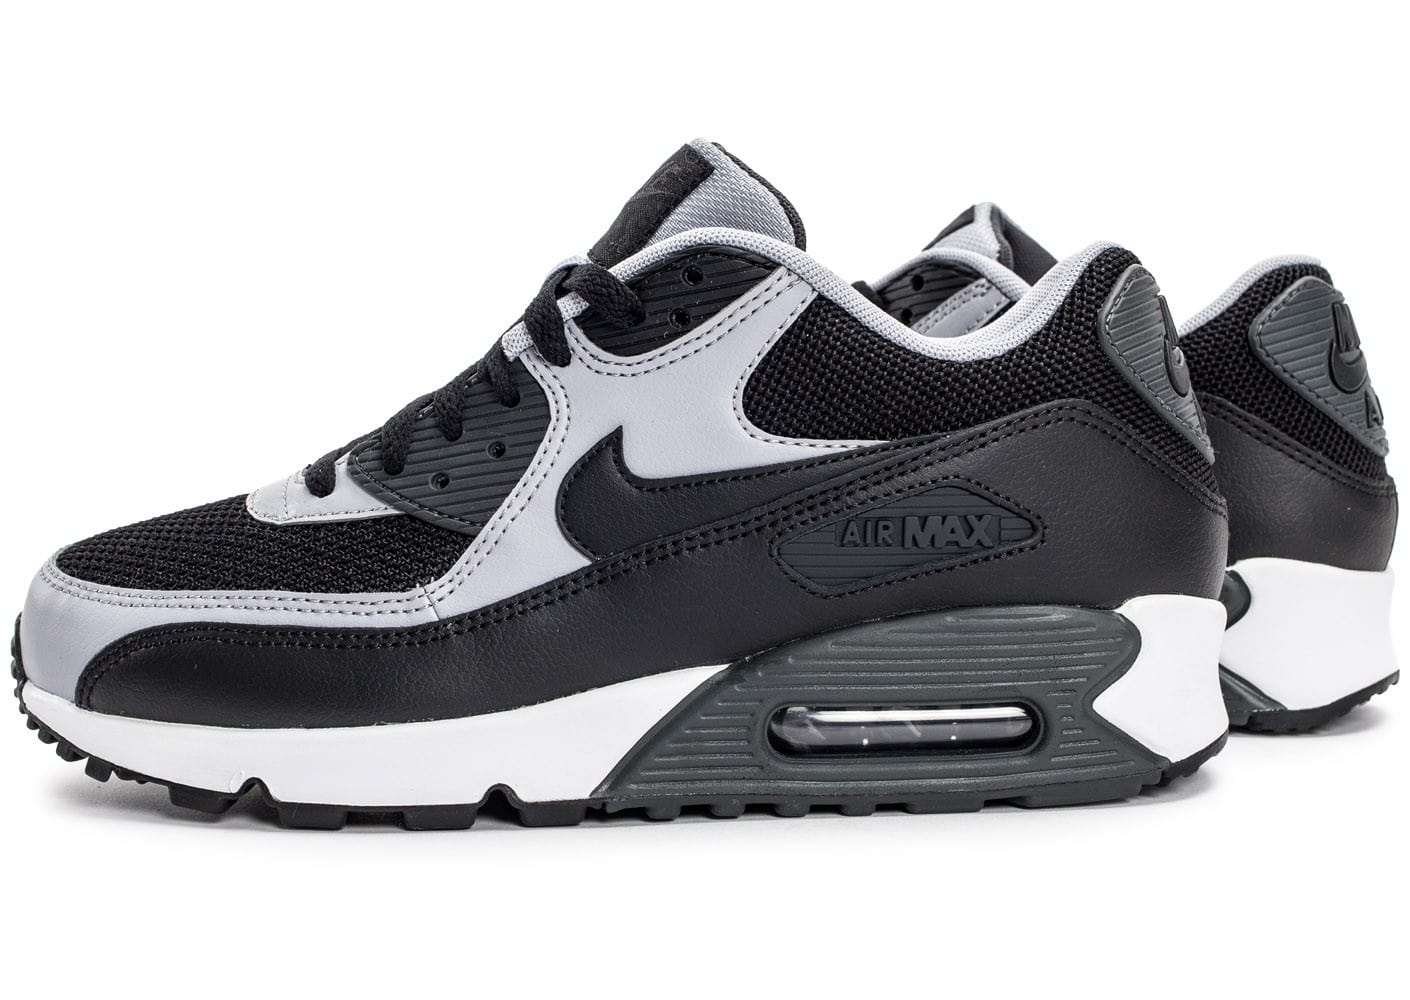 nike air max 90 essential noire et grise chaussures homme chausport. Black Bedroom Furniture Sets. Home Design Ideas